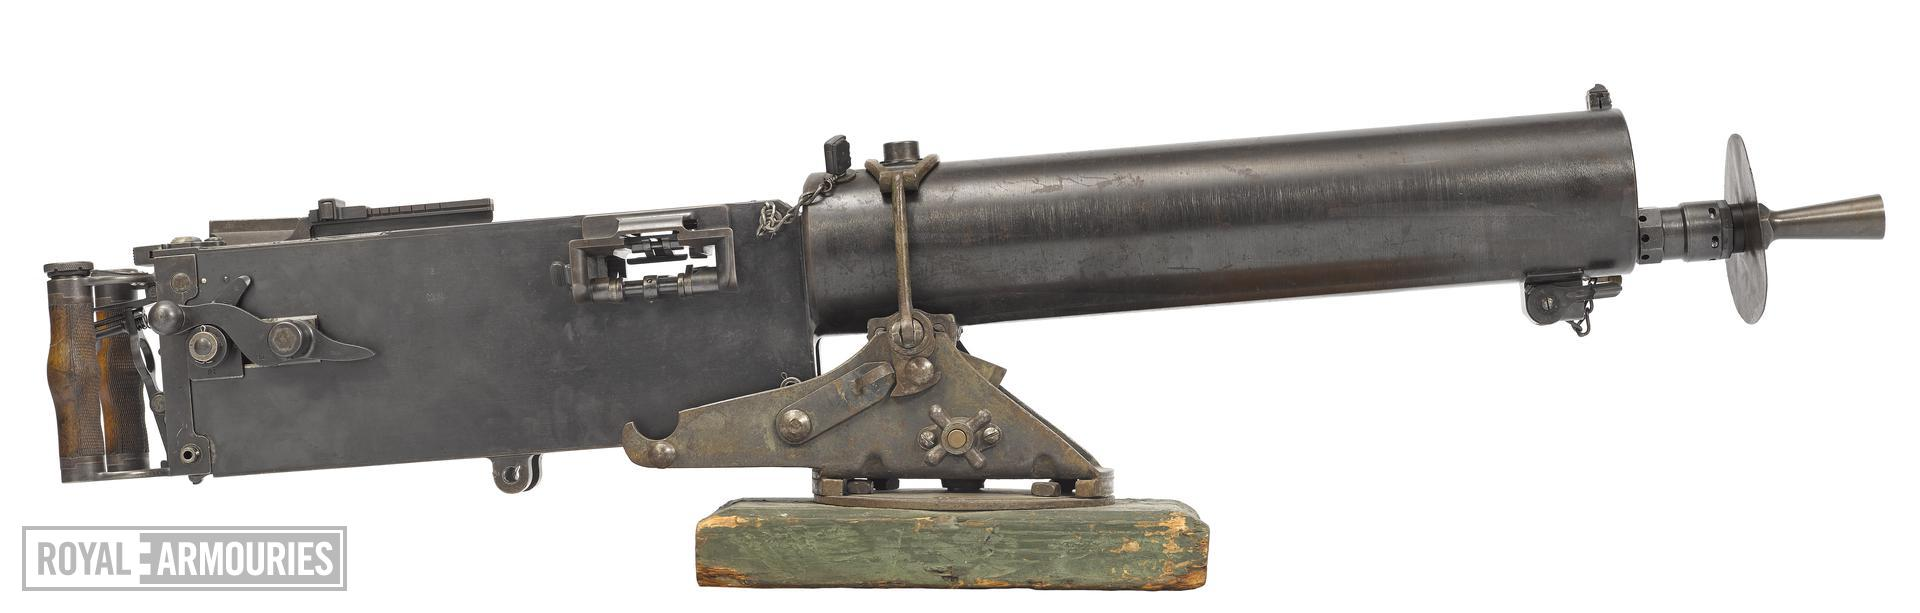 Maxim MG 08 machine gun - Arms of the First World War